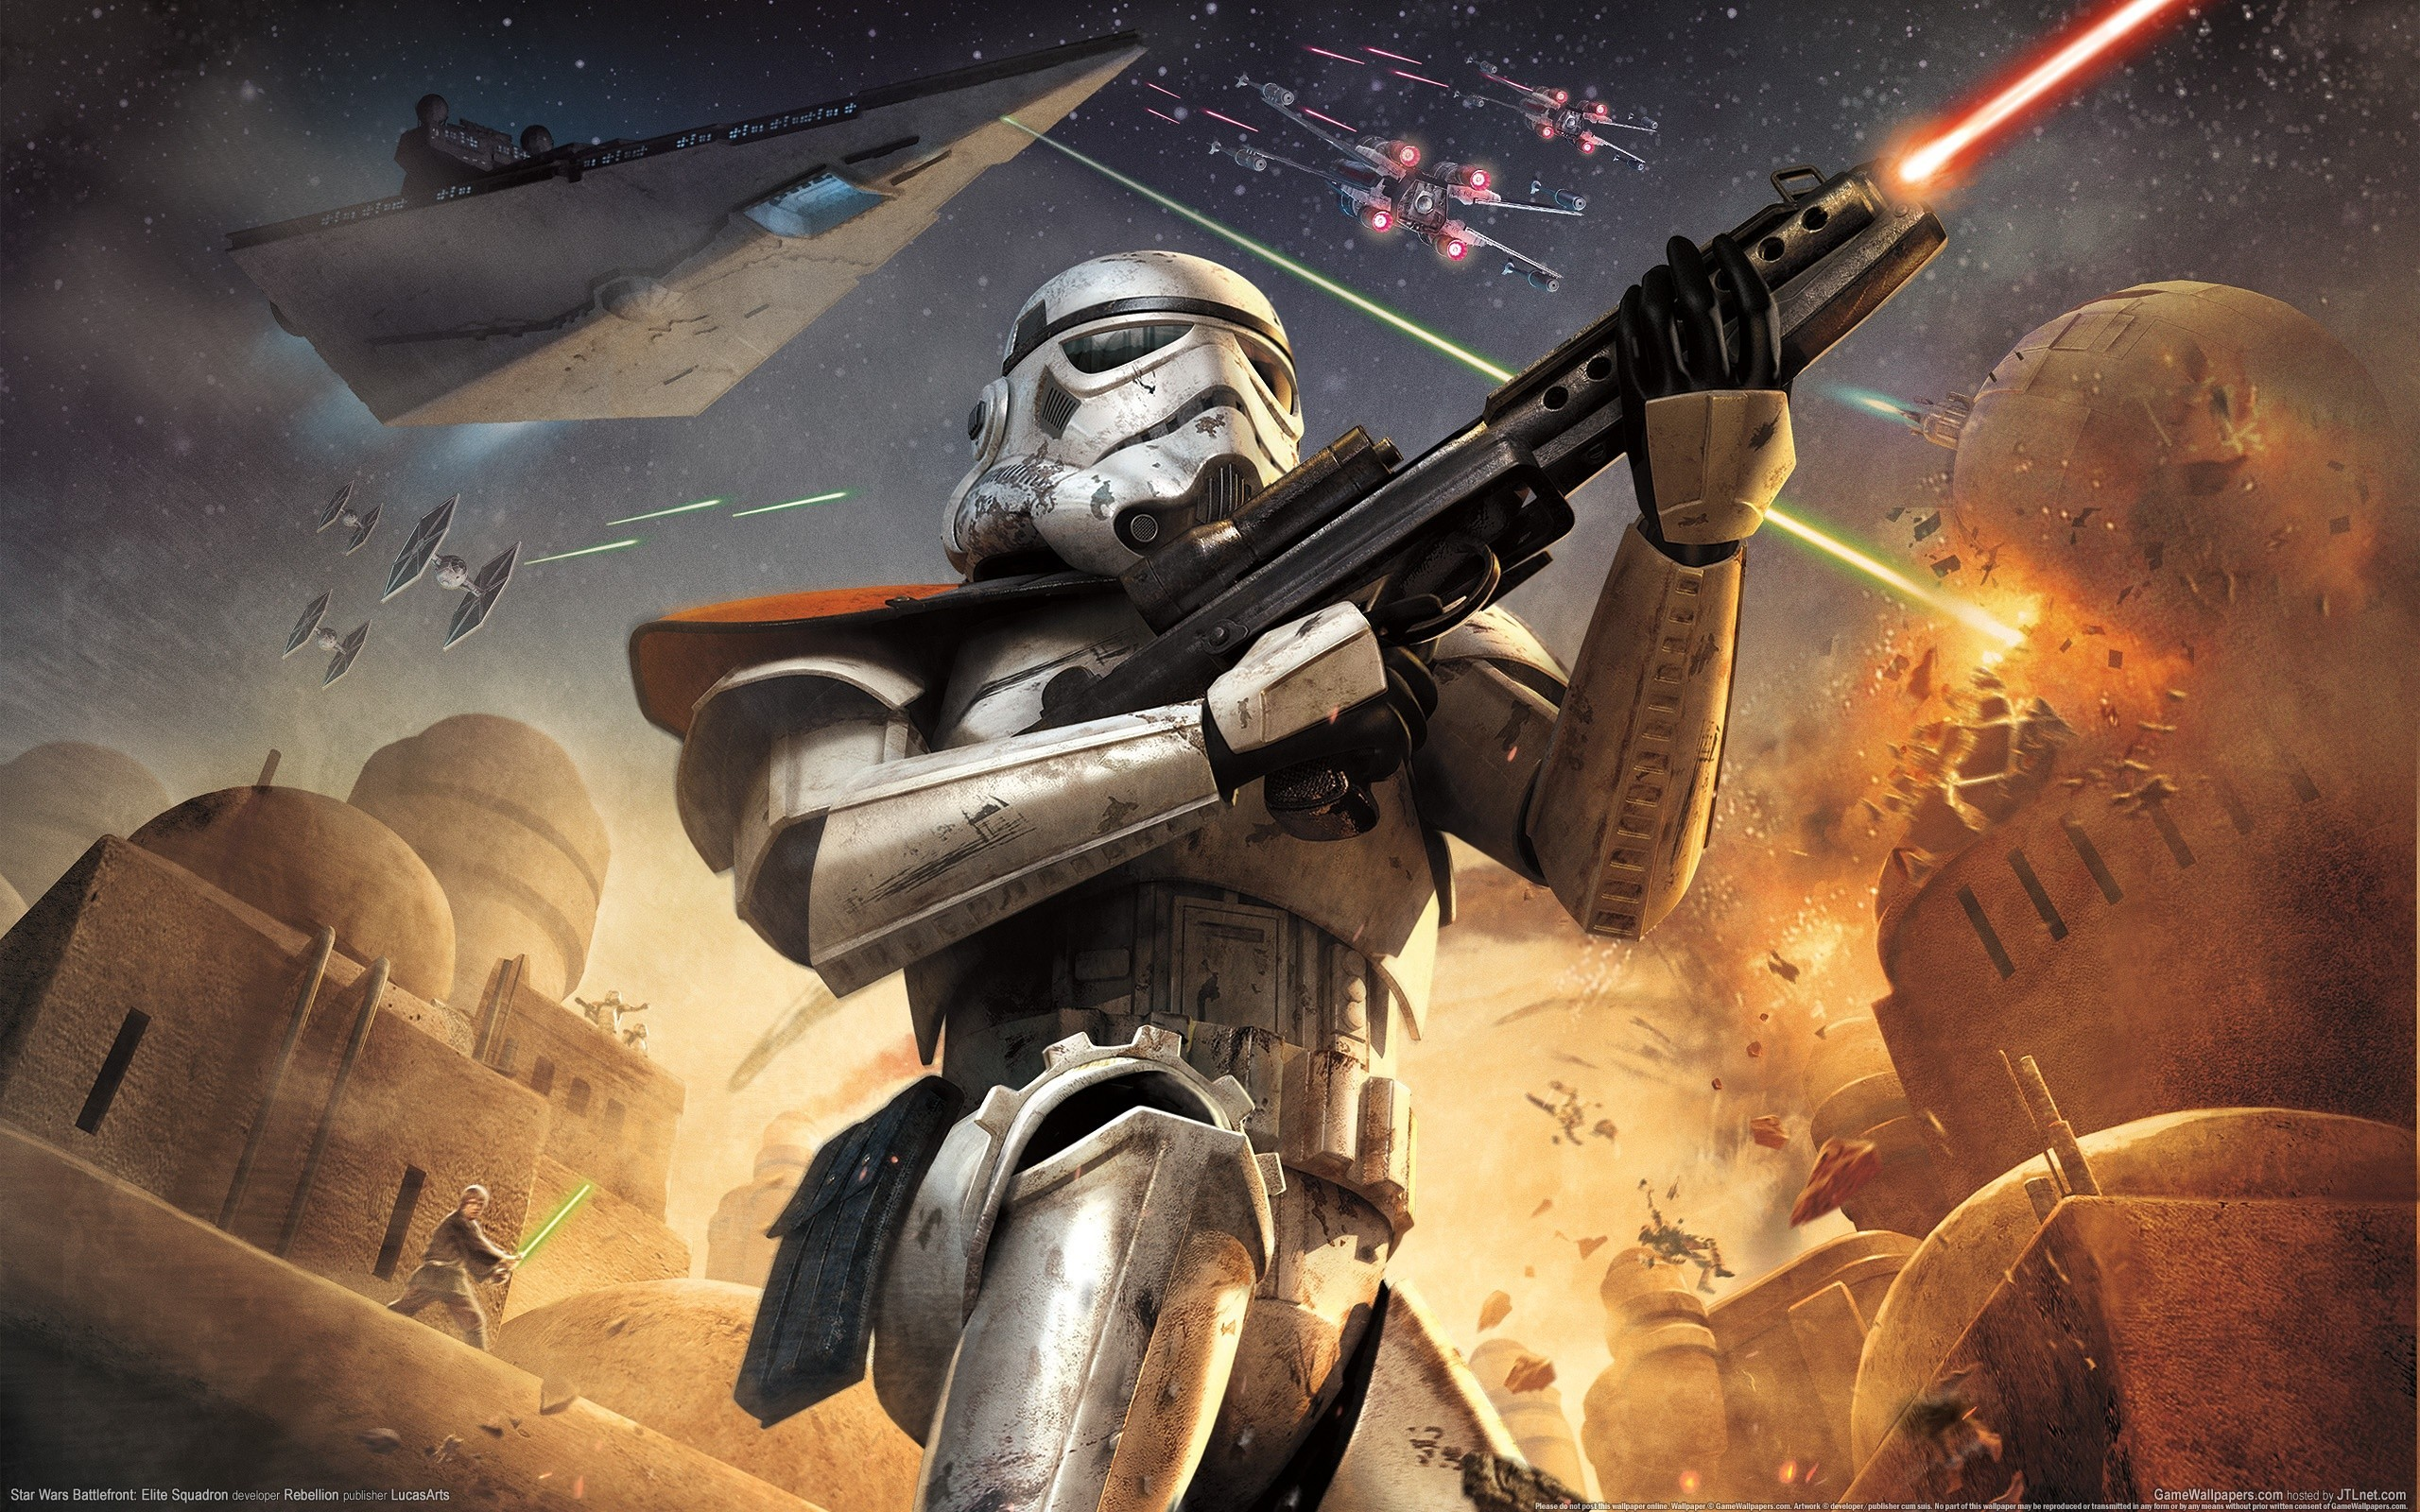 2560x1600 Star wars video games stormtroopers static 3d wallpaper |  | 17715  | WallpaperUP